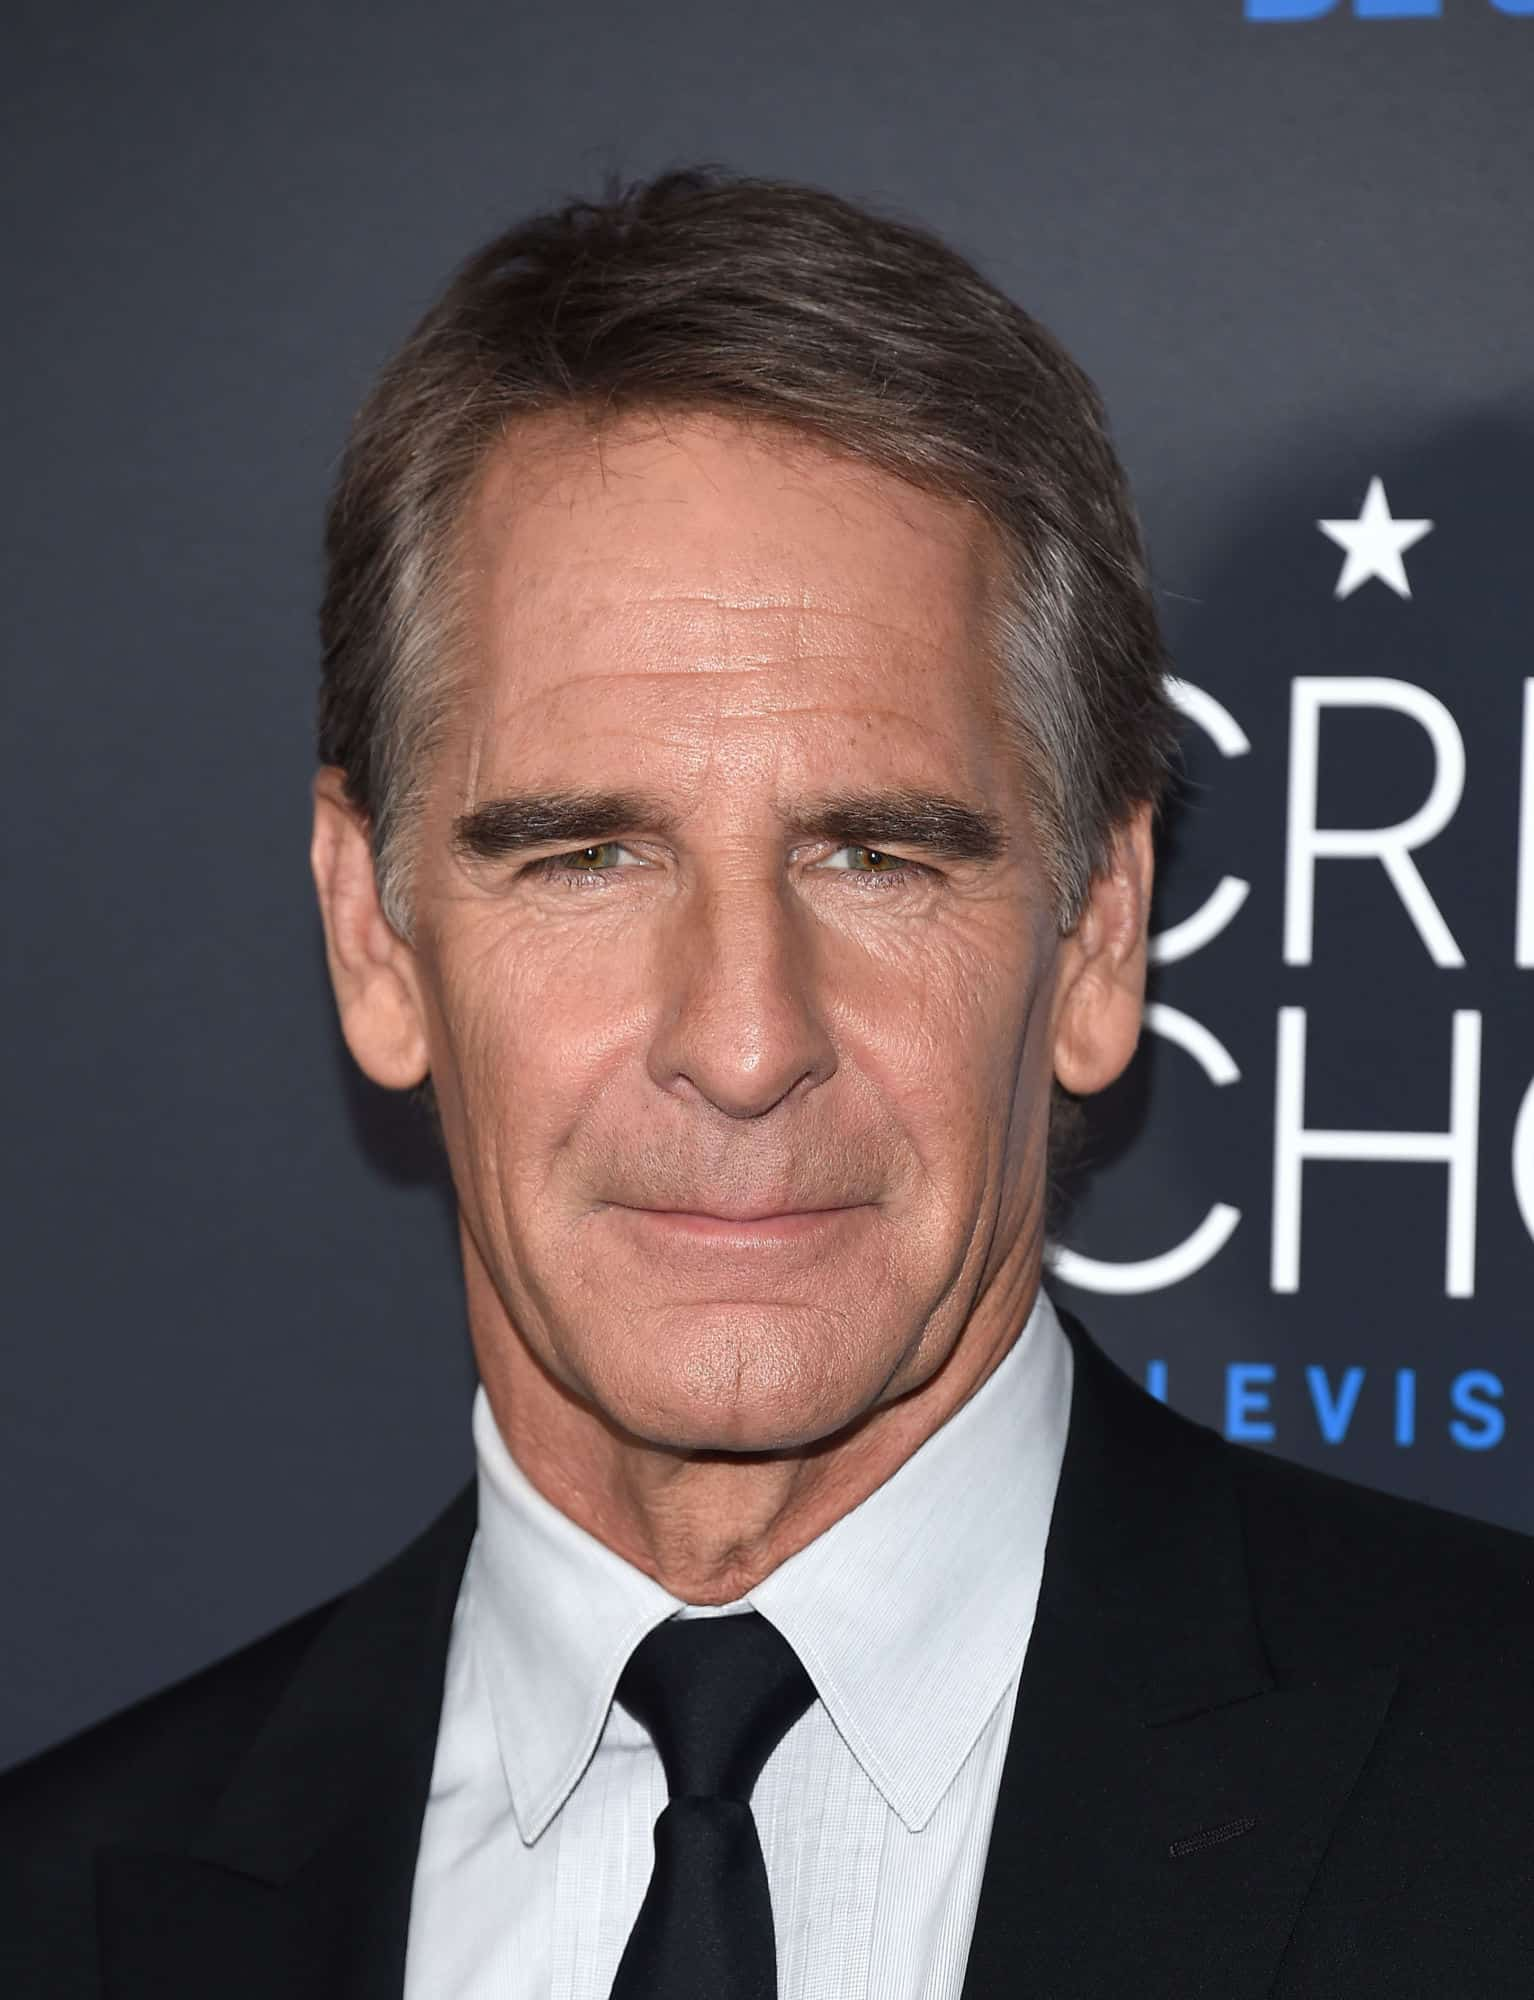 Scott Bakula networth